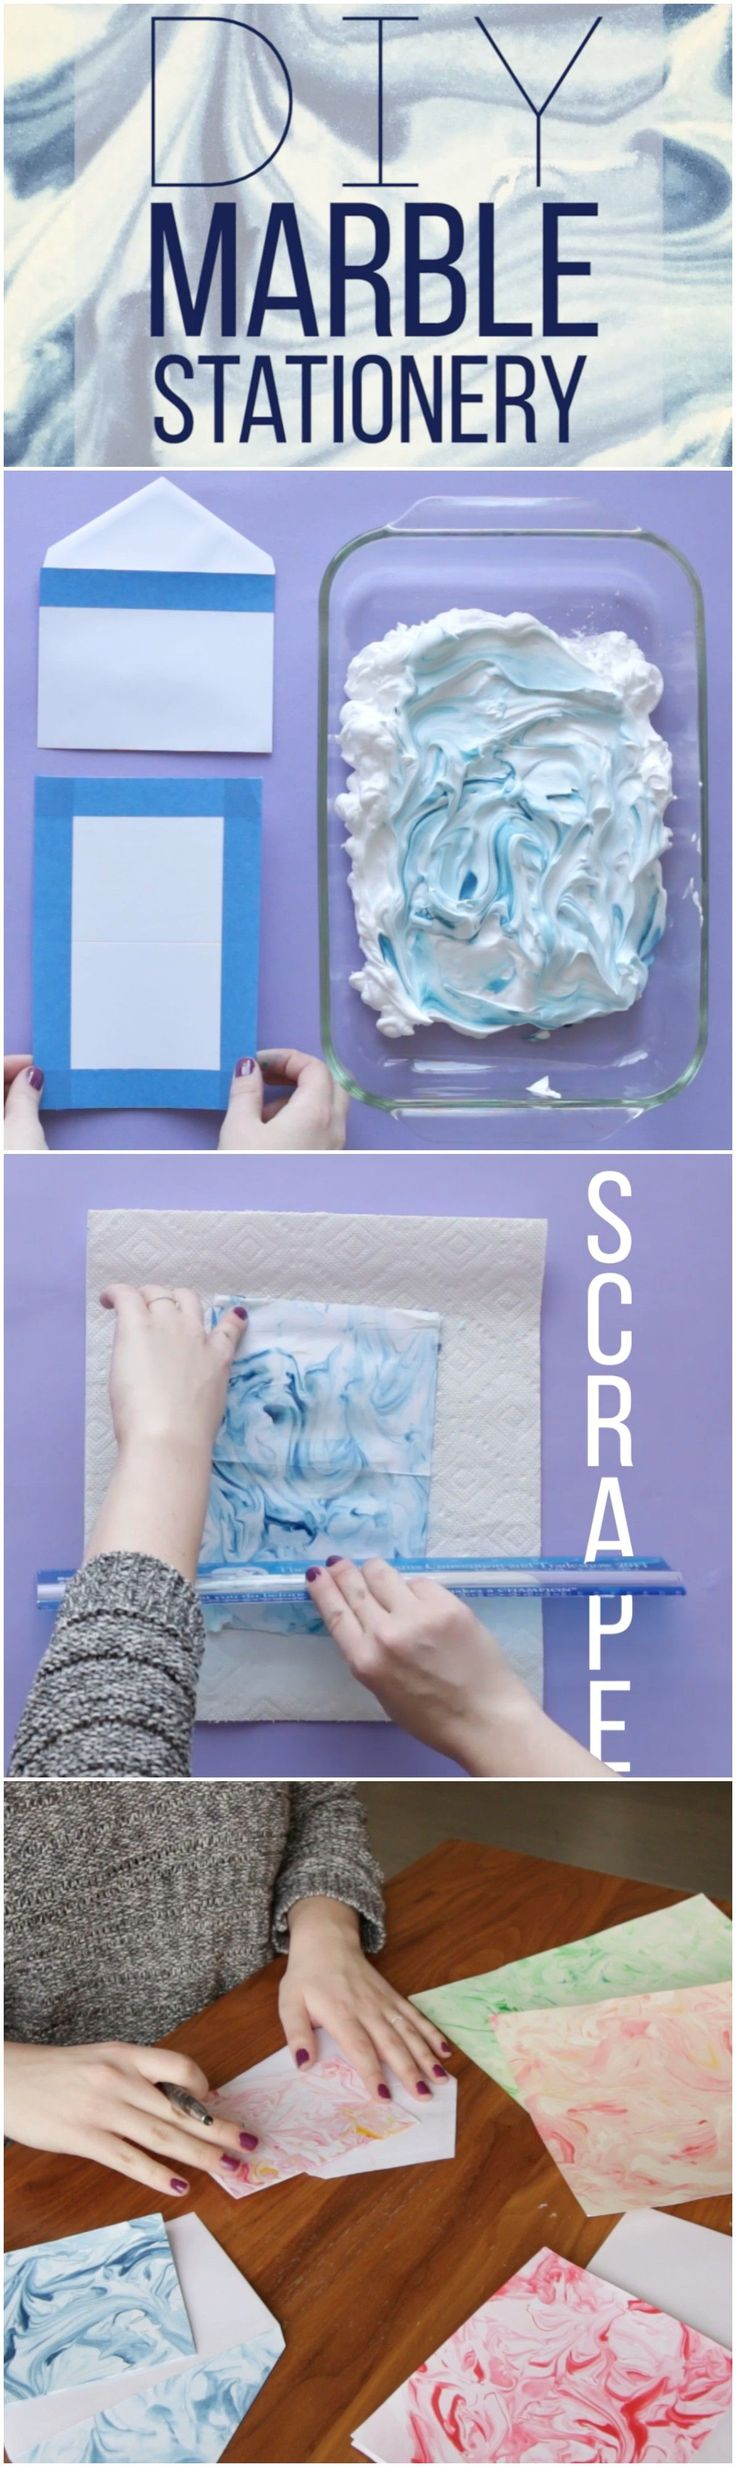 DIY Marble Stationary – This would be awesome for a teen craft Sorcha Lupton